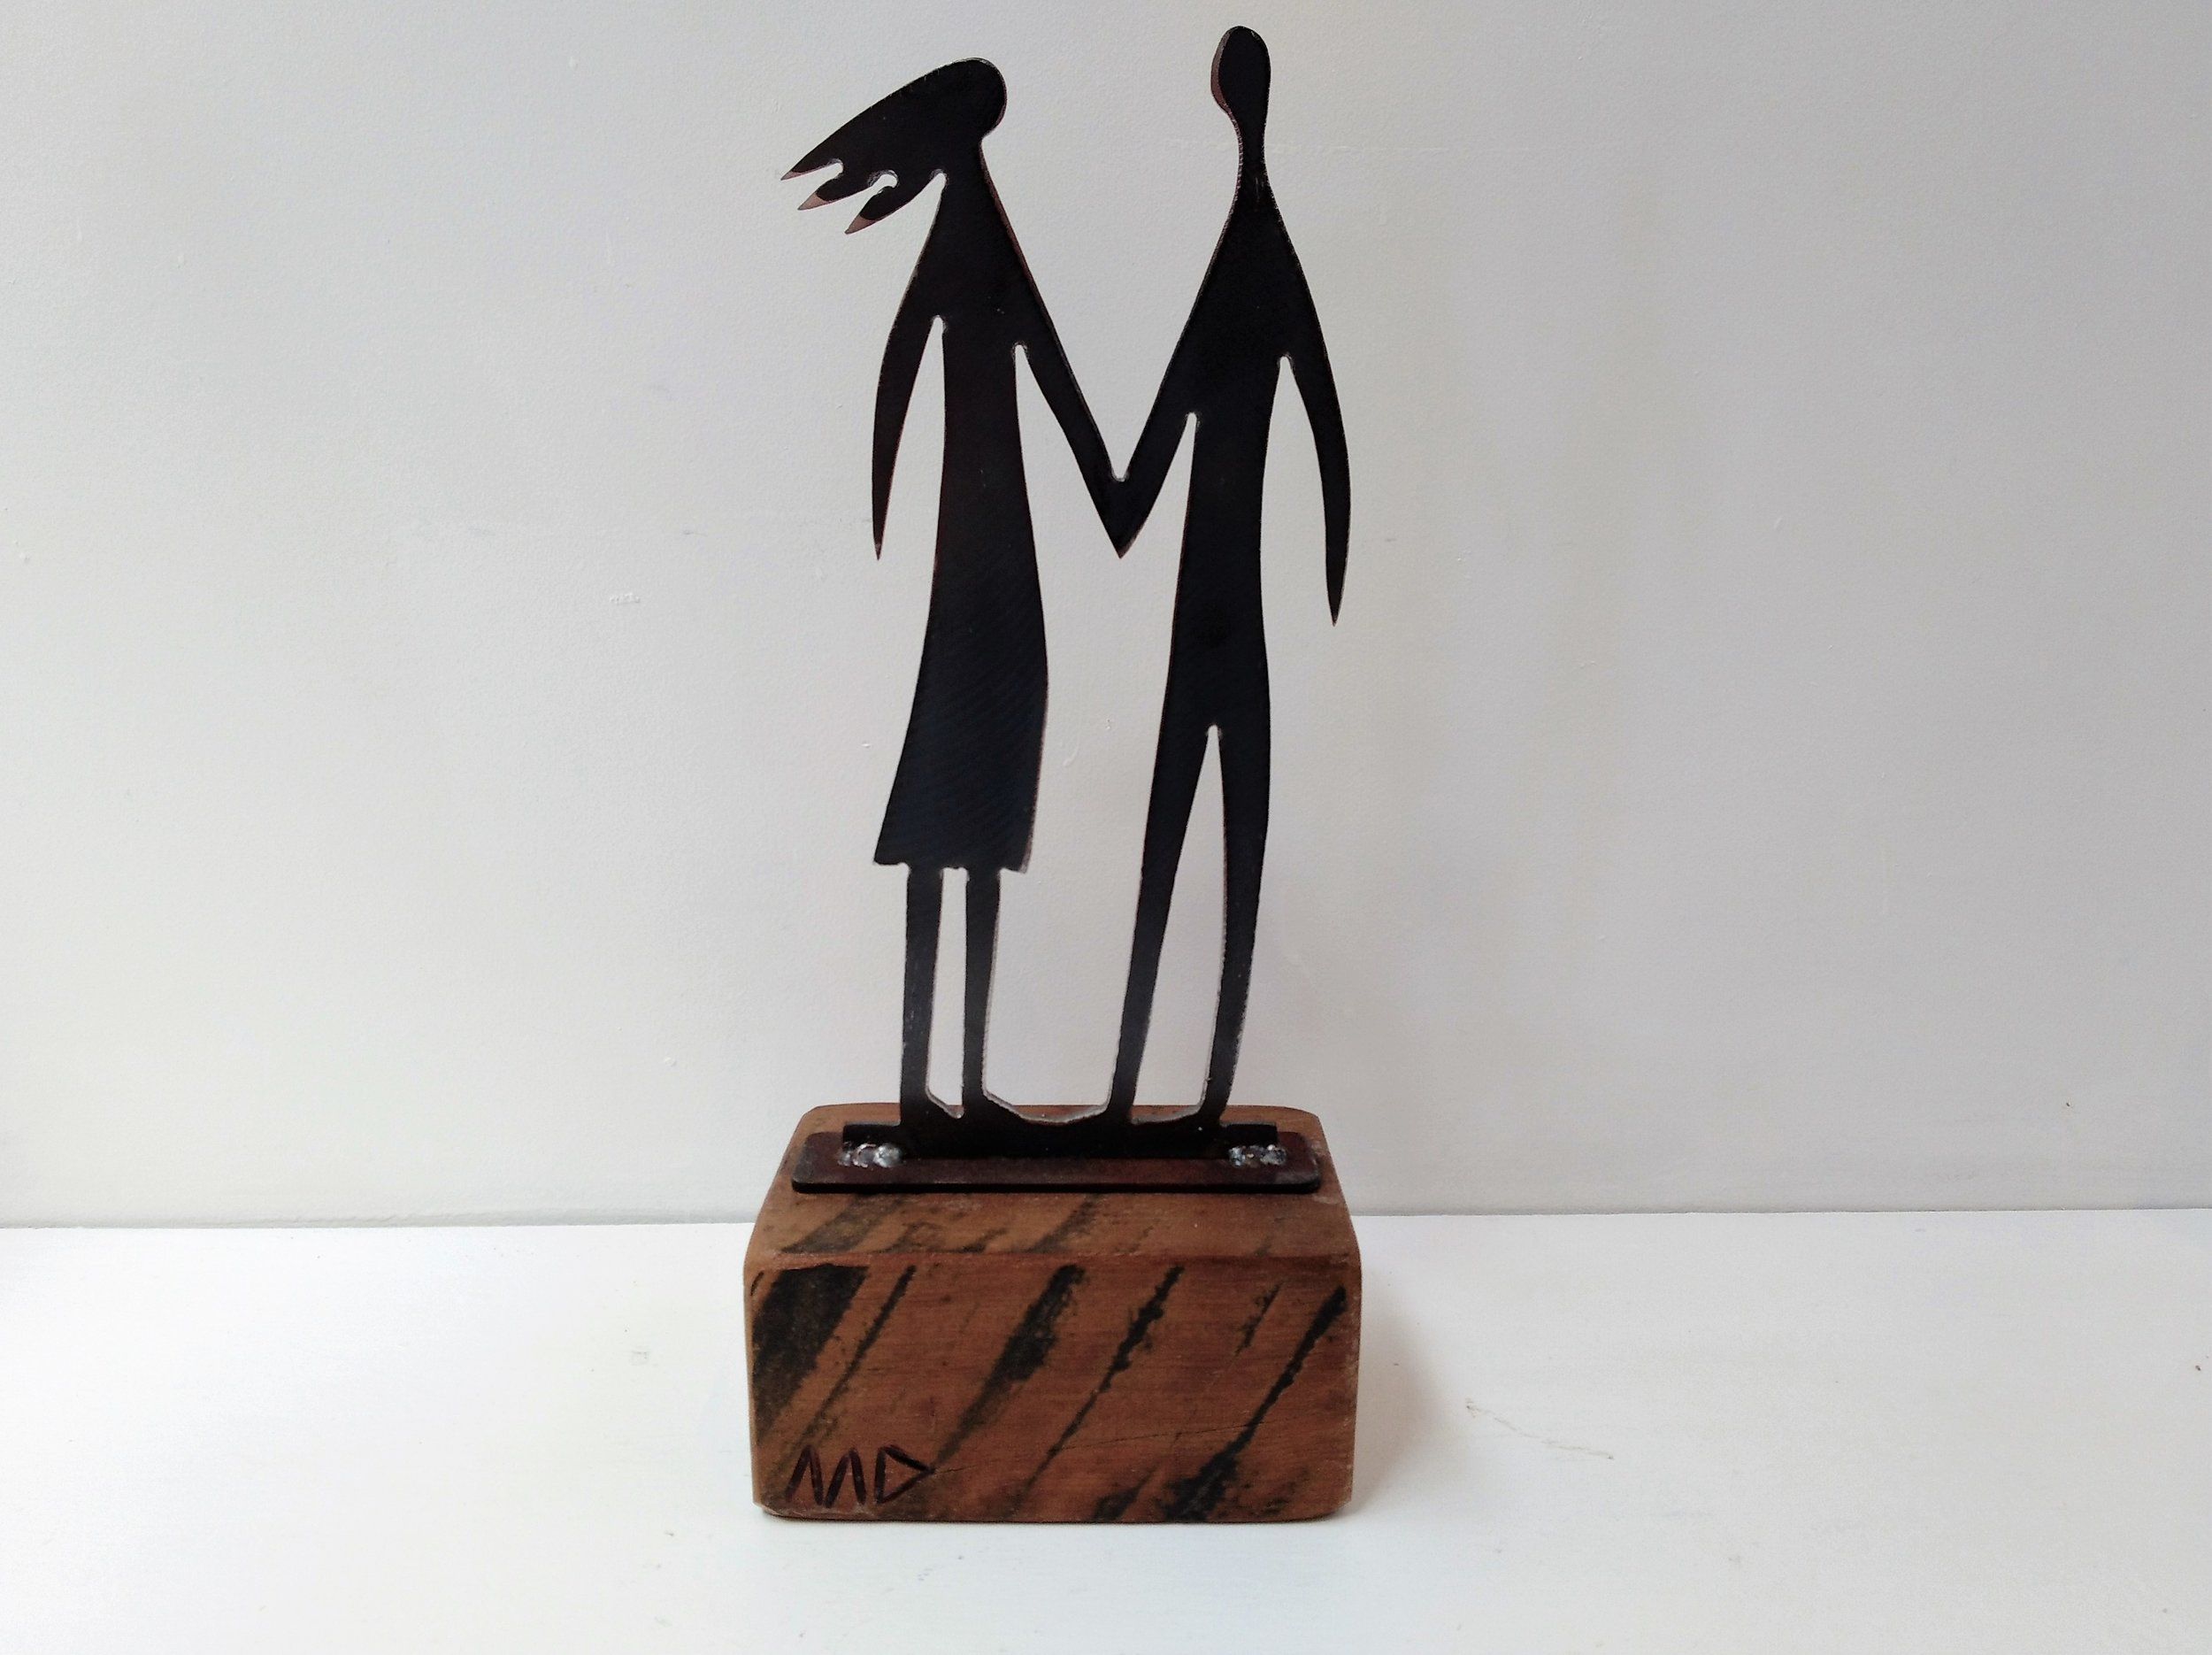 Man & Woman - On the Beach Series   Mark Dimock, steel and wood sculpture, 350mm h  $255.00 (only 1 in stock)